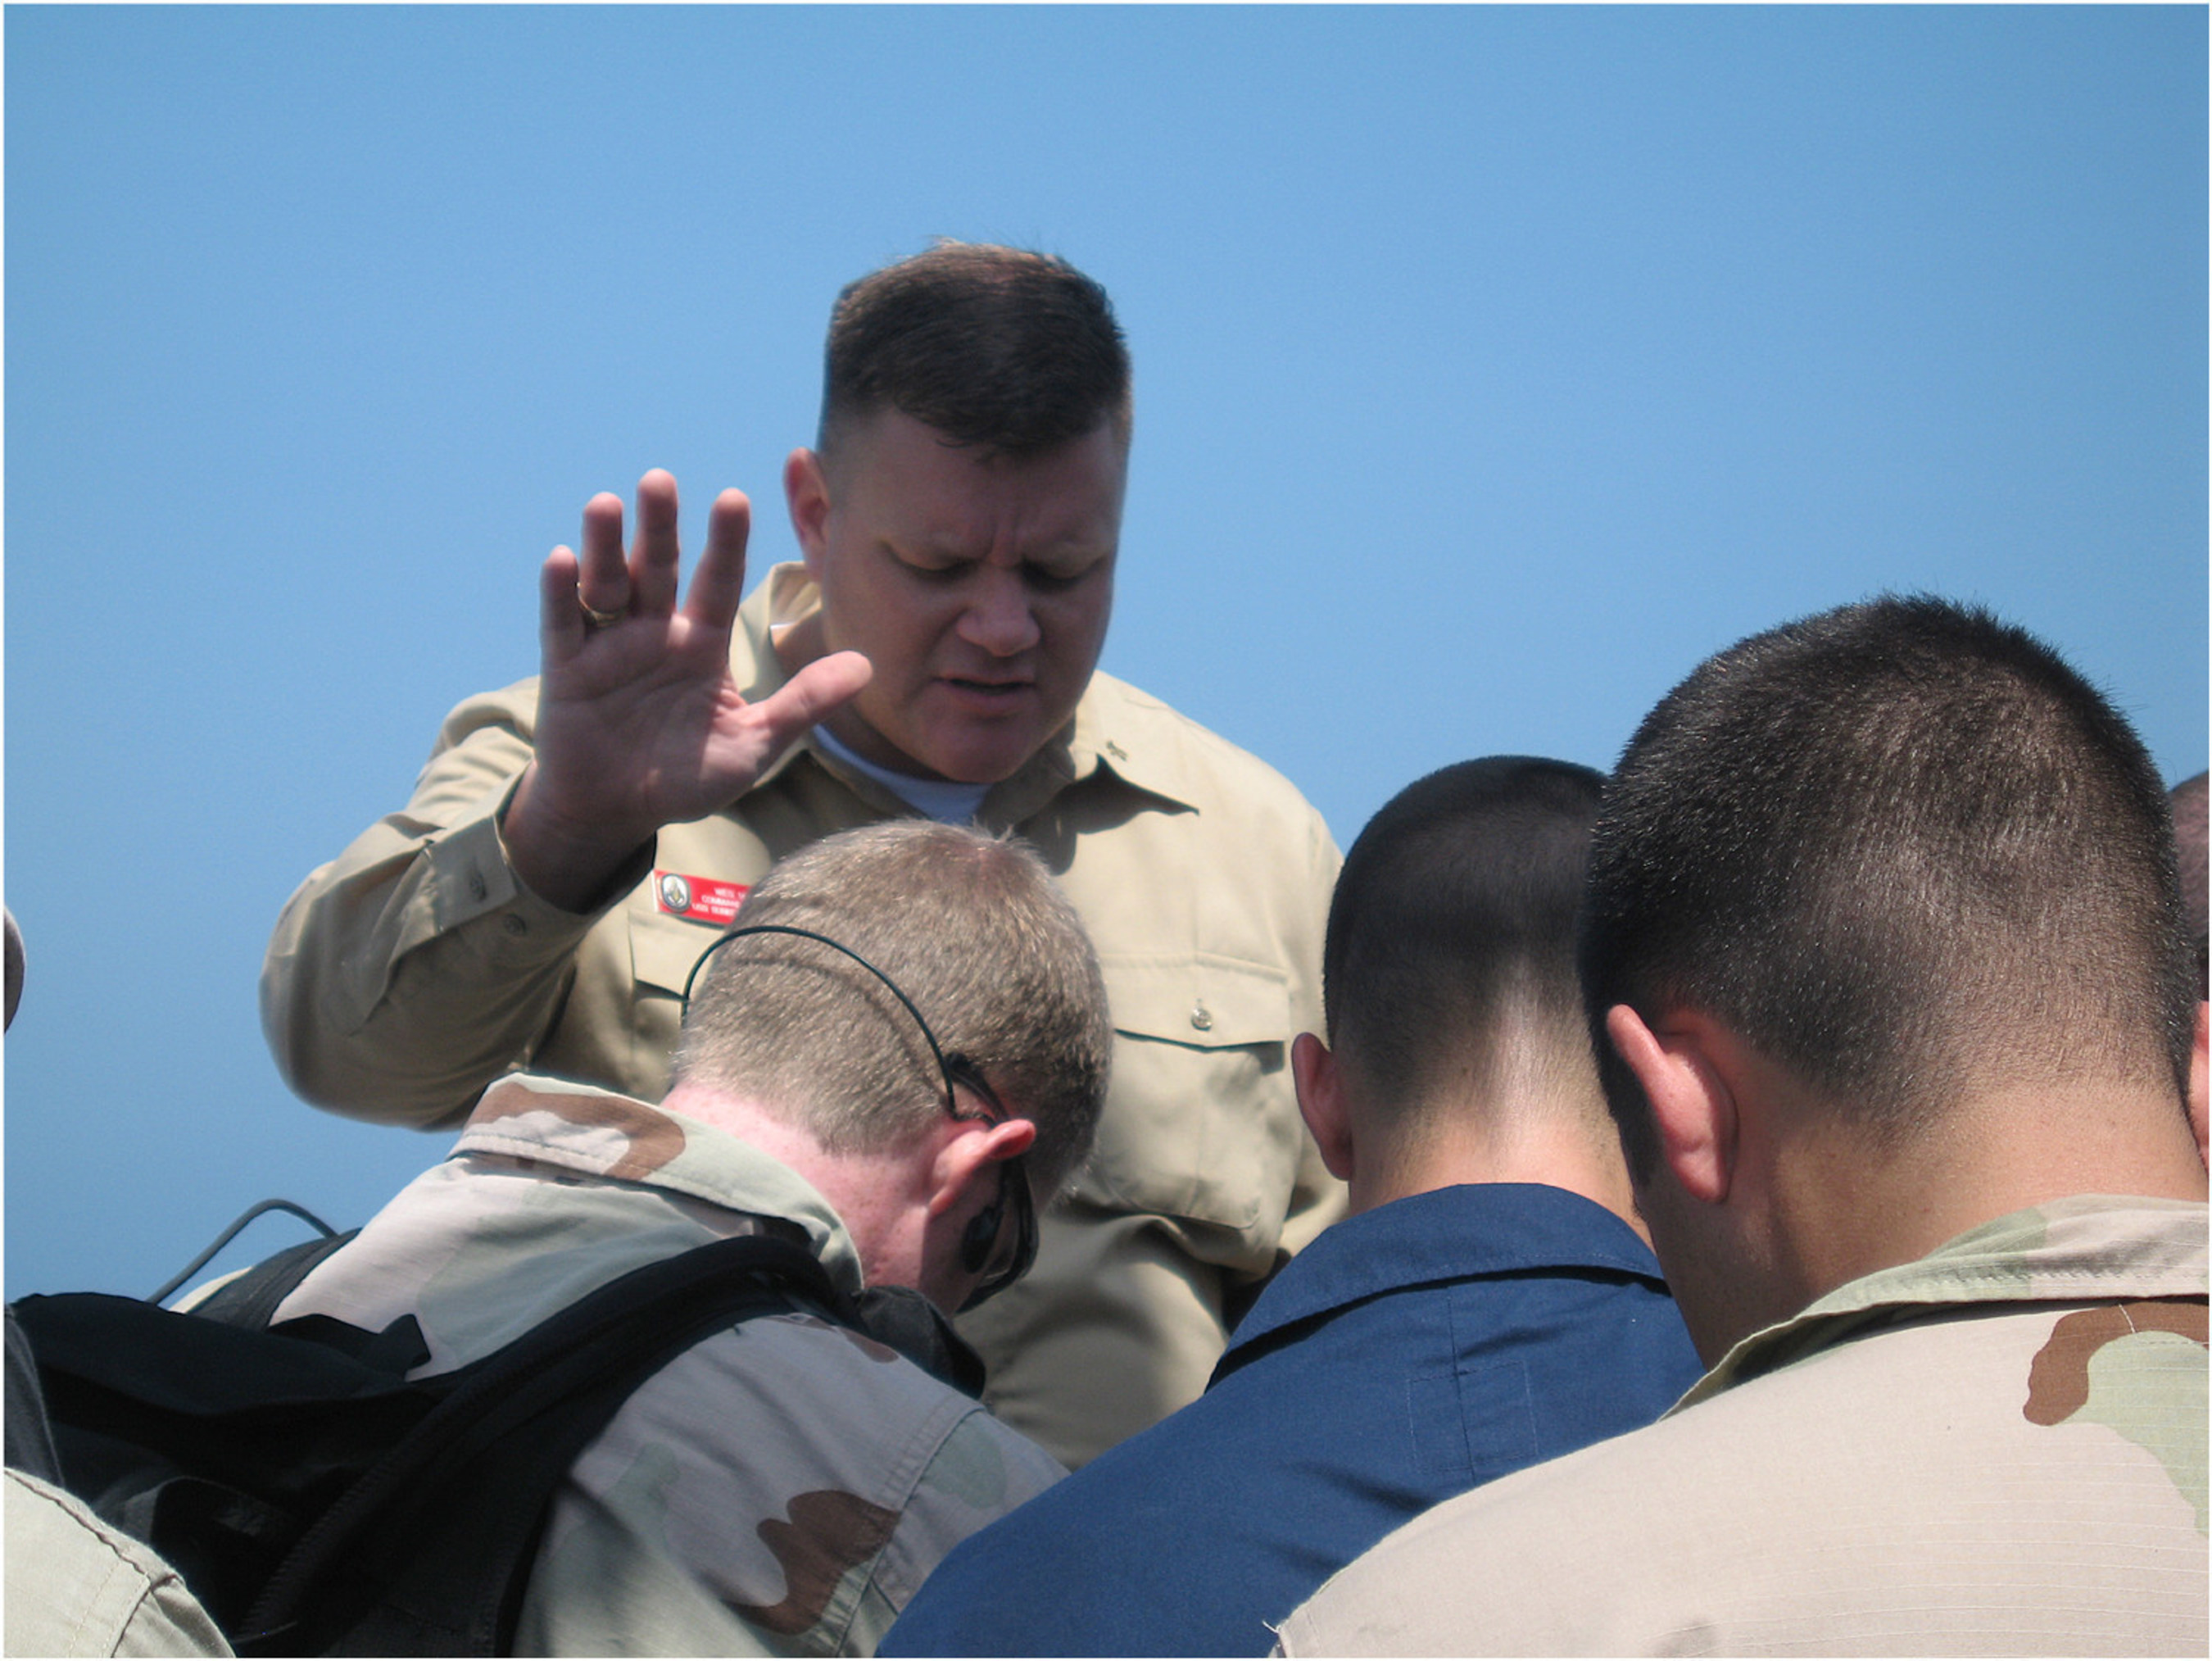 NAVY OFFICIALS VIOLATE FEDERAL LAW BY REFUSING TO GRANT RELIGIOUS LIBERTY TO DECORATED NAVY CHAPLAIN